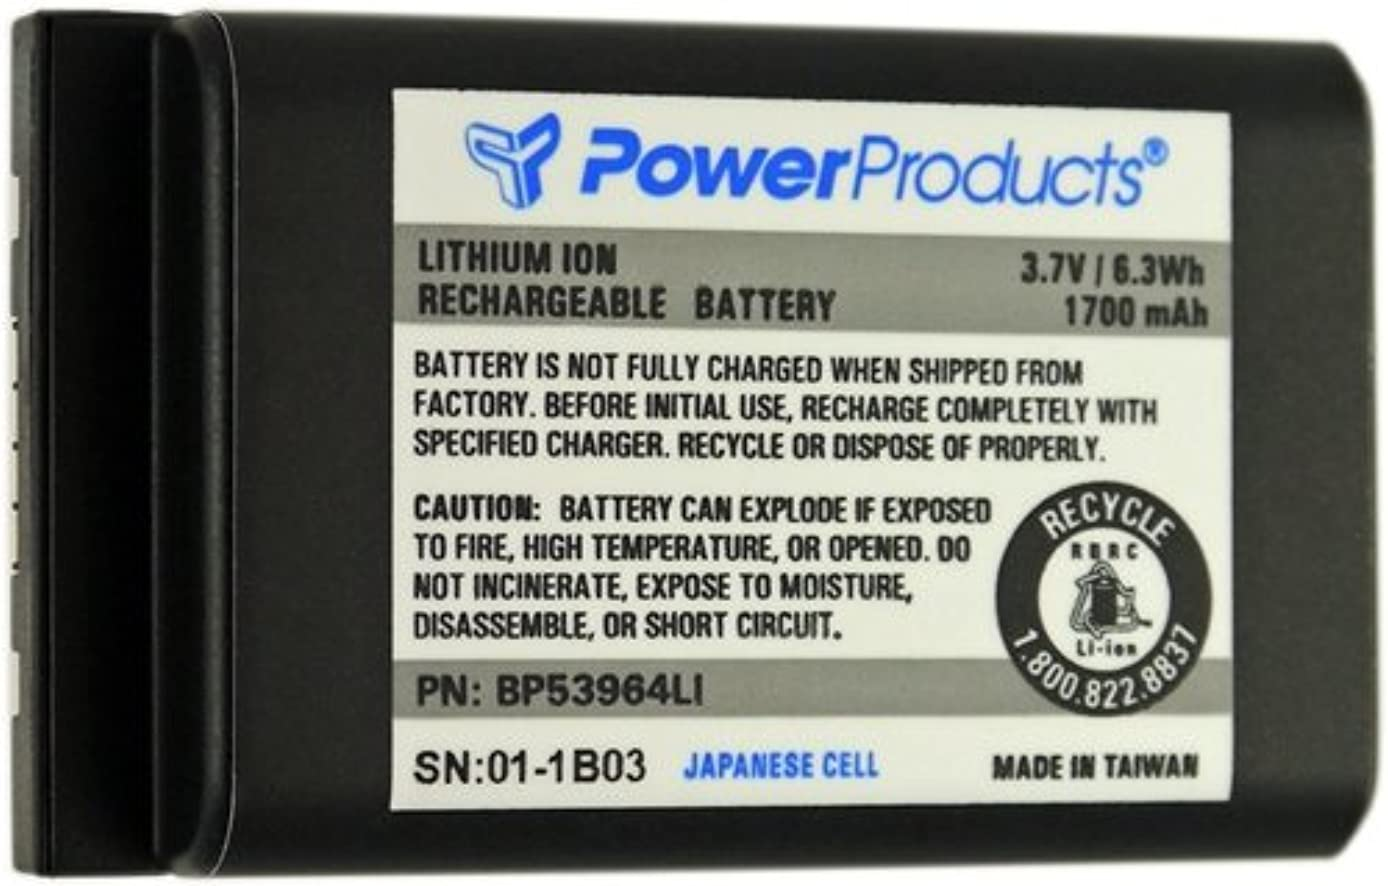 Power Products High Capacity Lithium Ion Battery for Motorola DTR Series Radios